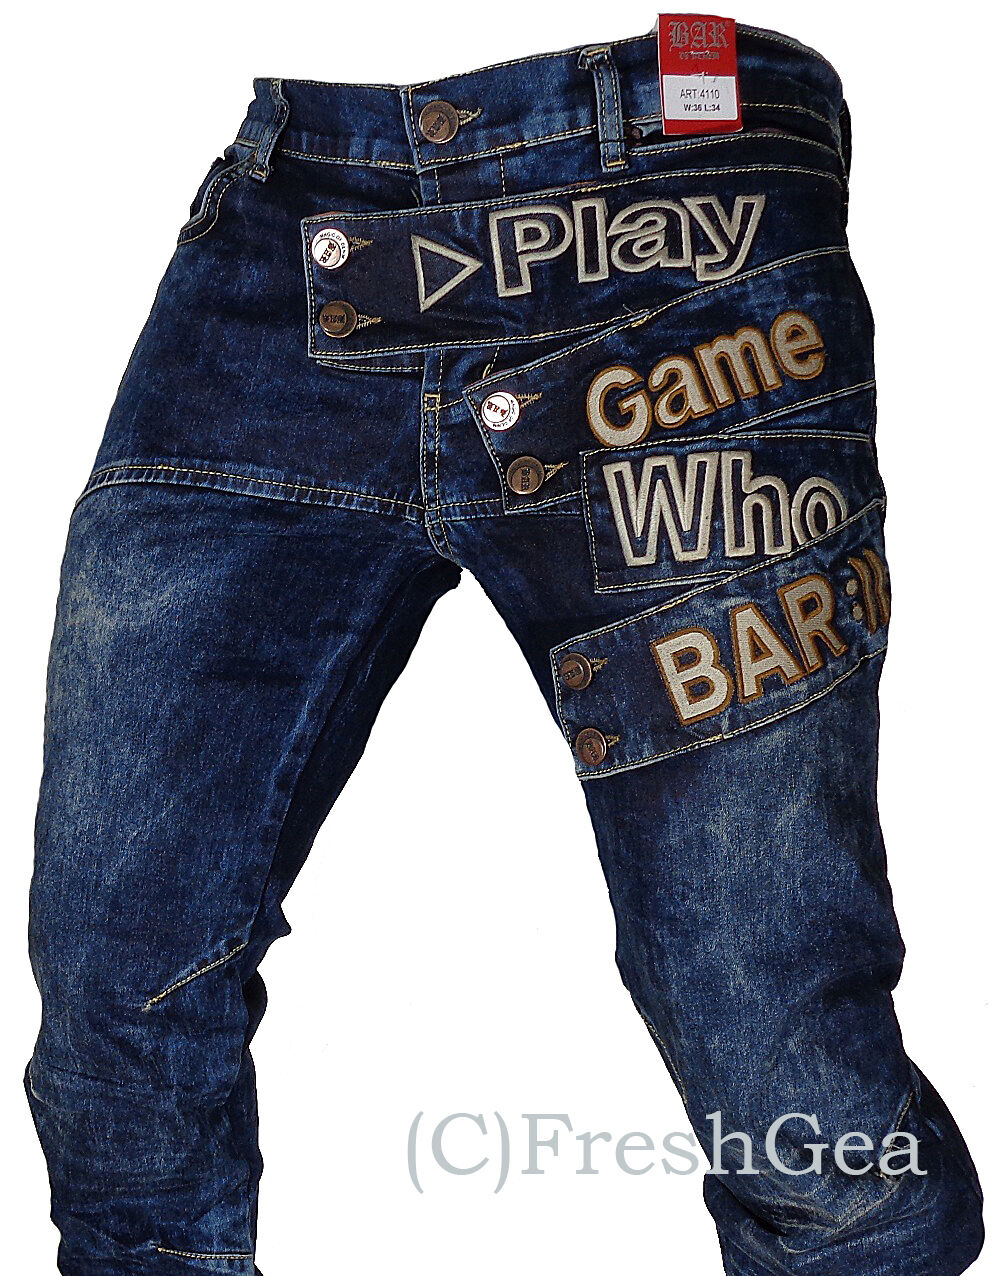 New Mens Bar of Denim Jeans, Barr Denim, Funky, Magic of Denim Style 4110 bluee